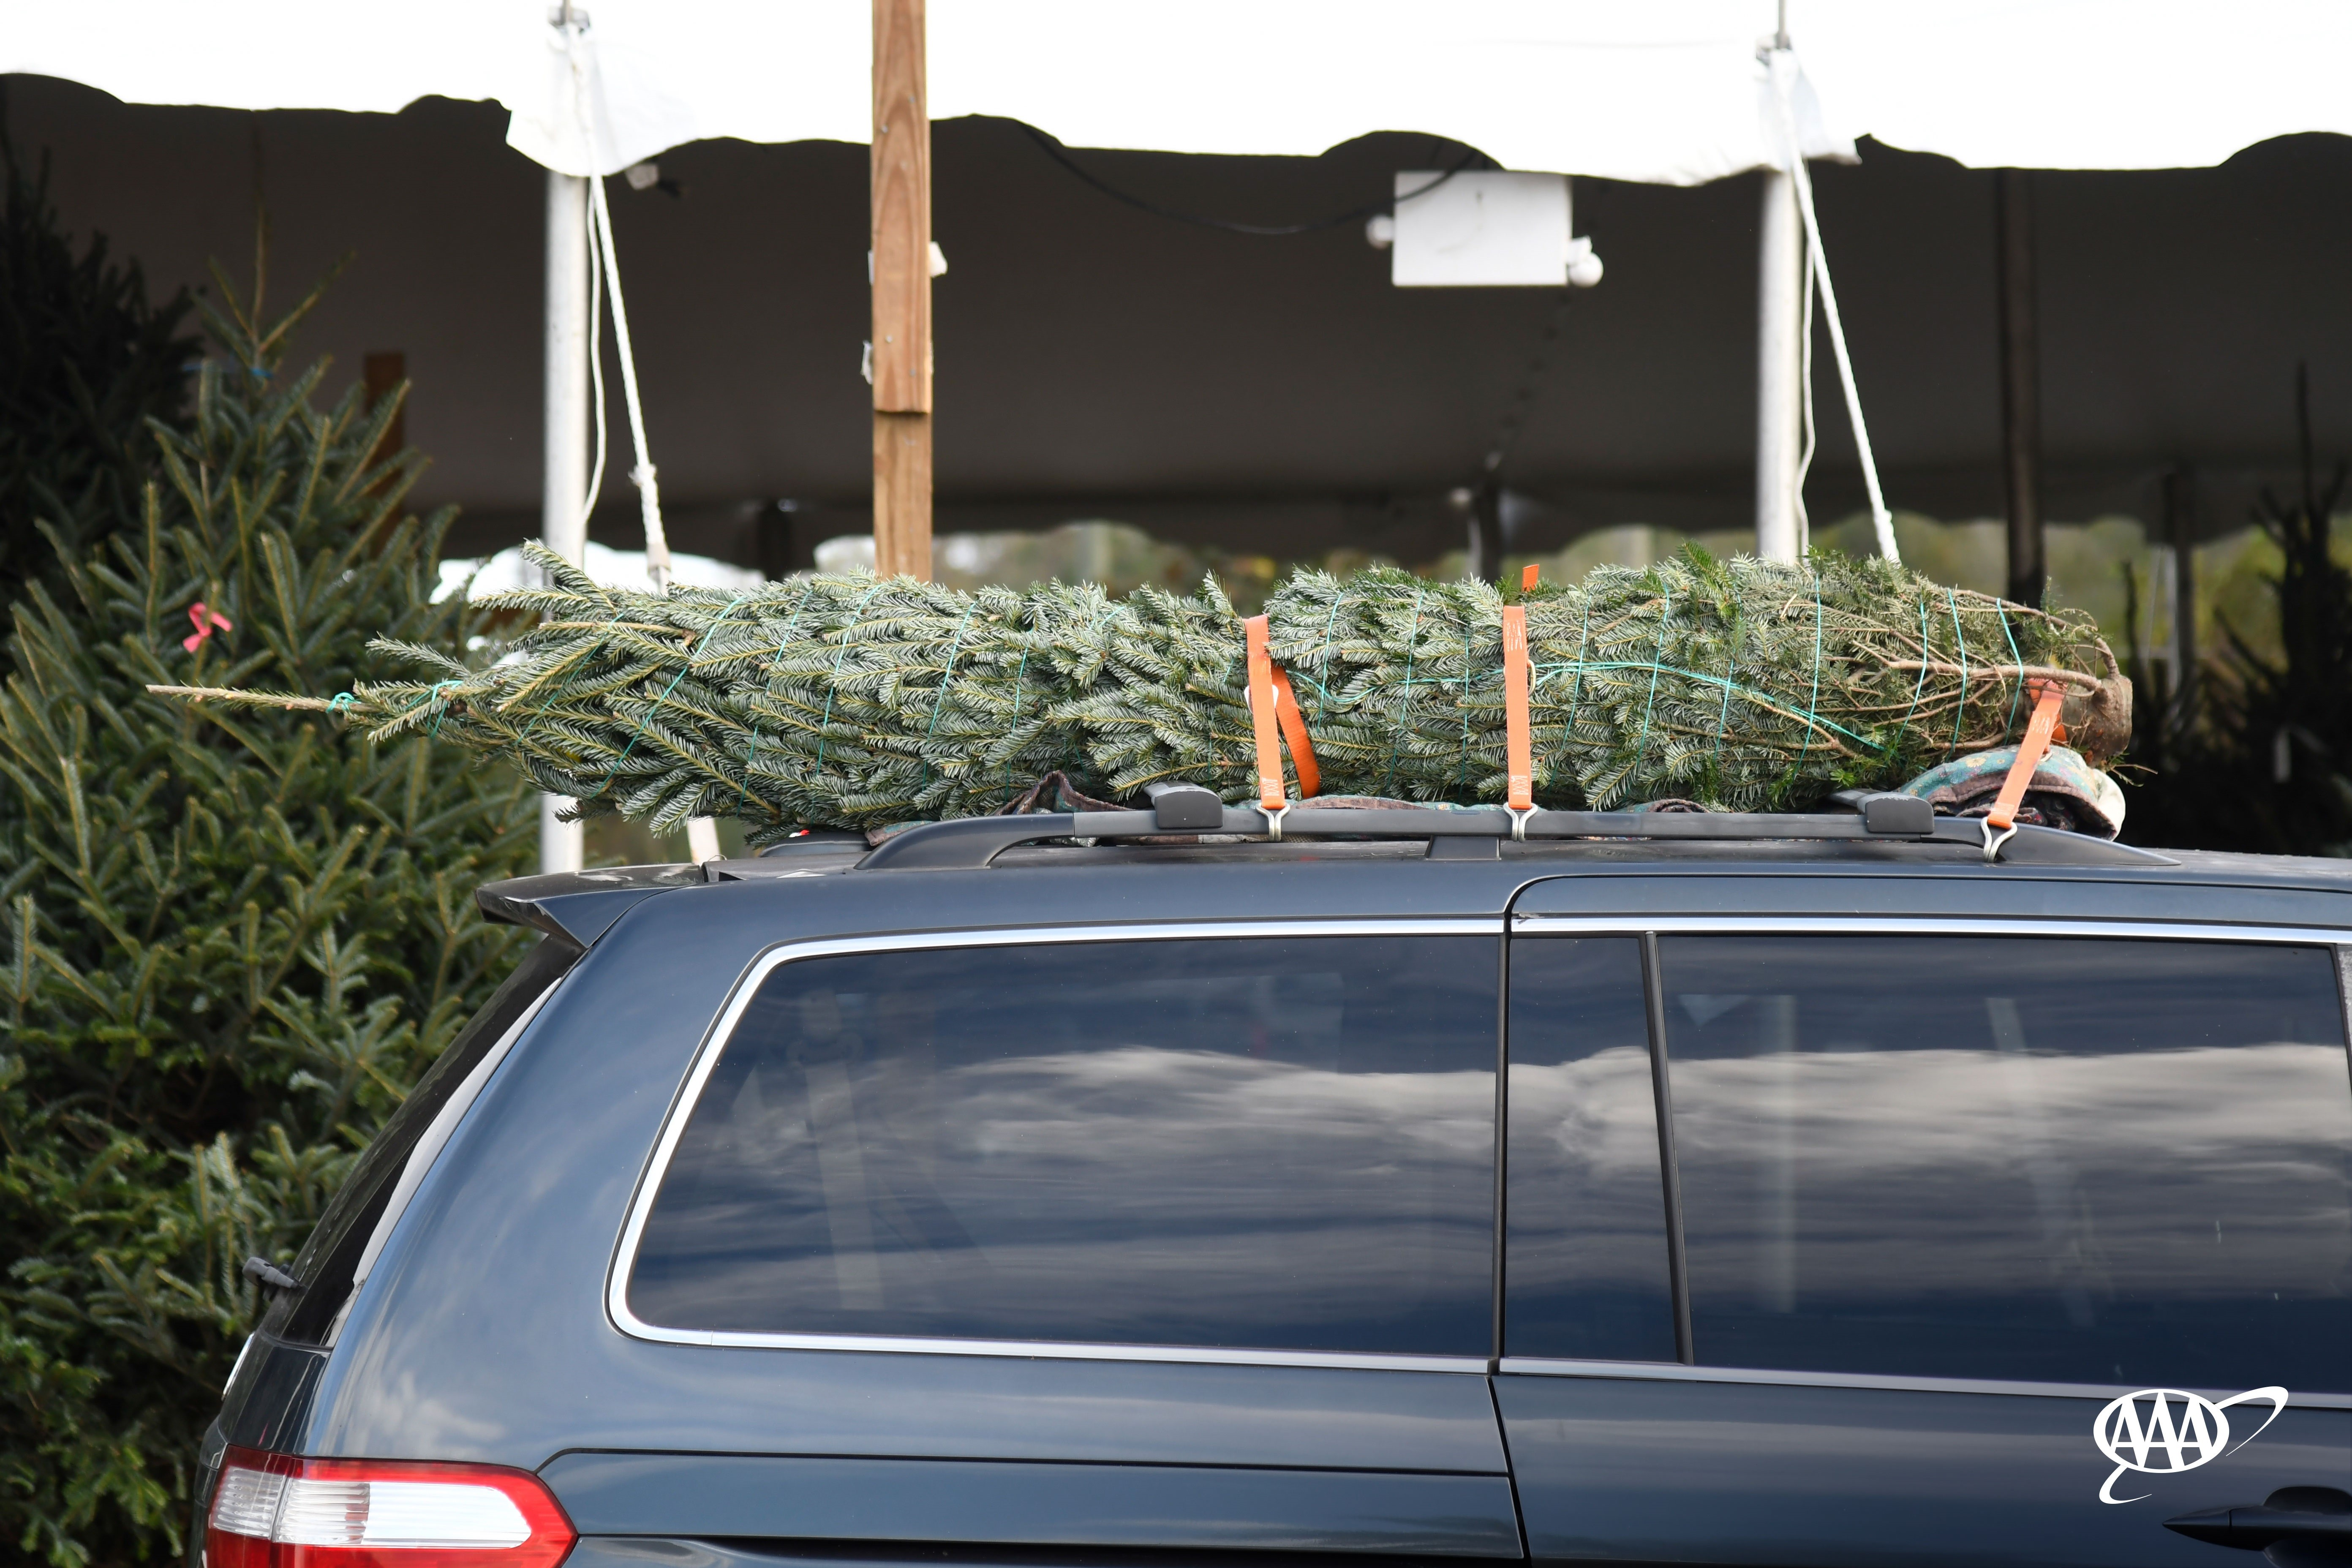 AAA Urges Drivers to Safely Secure Christmas Trees